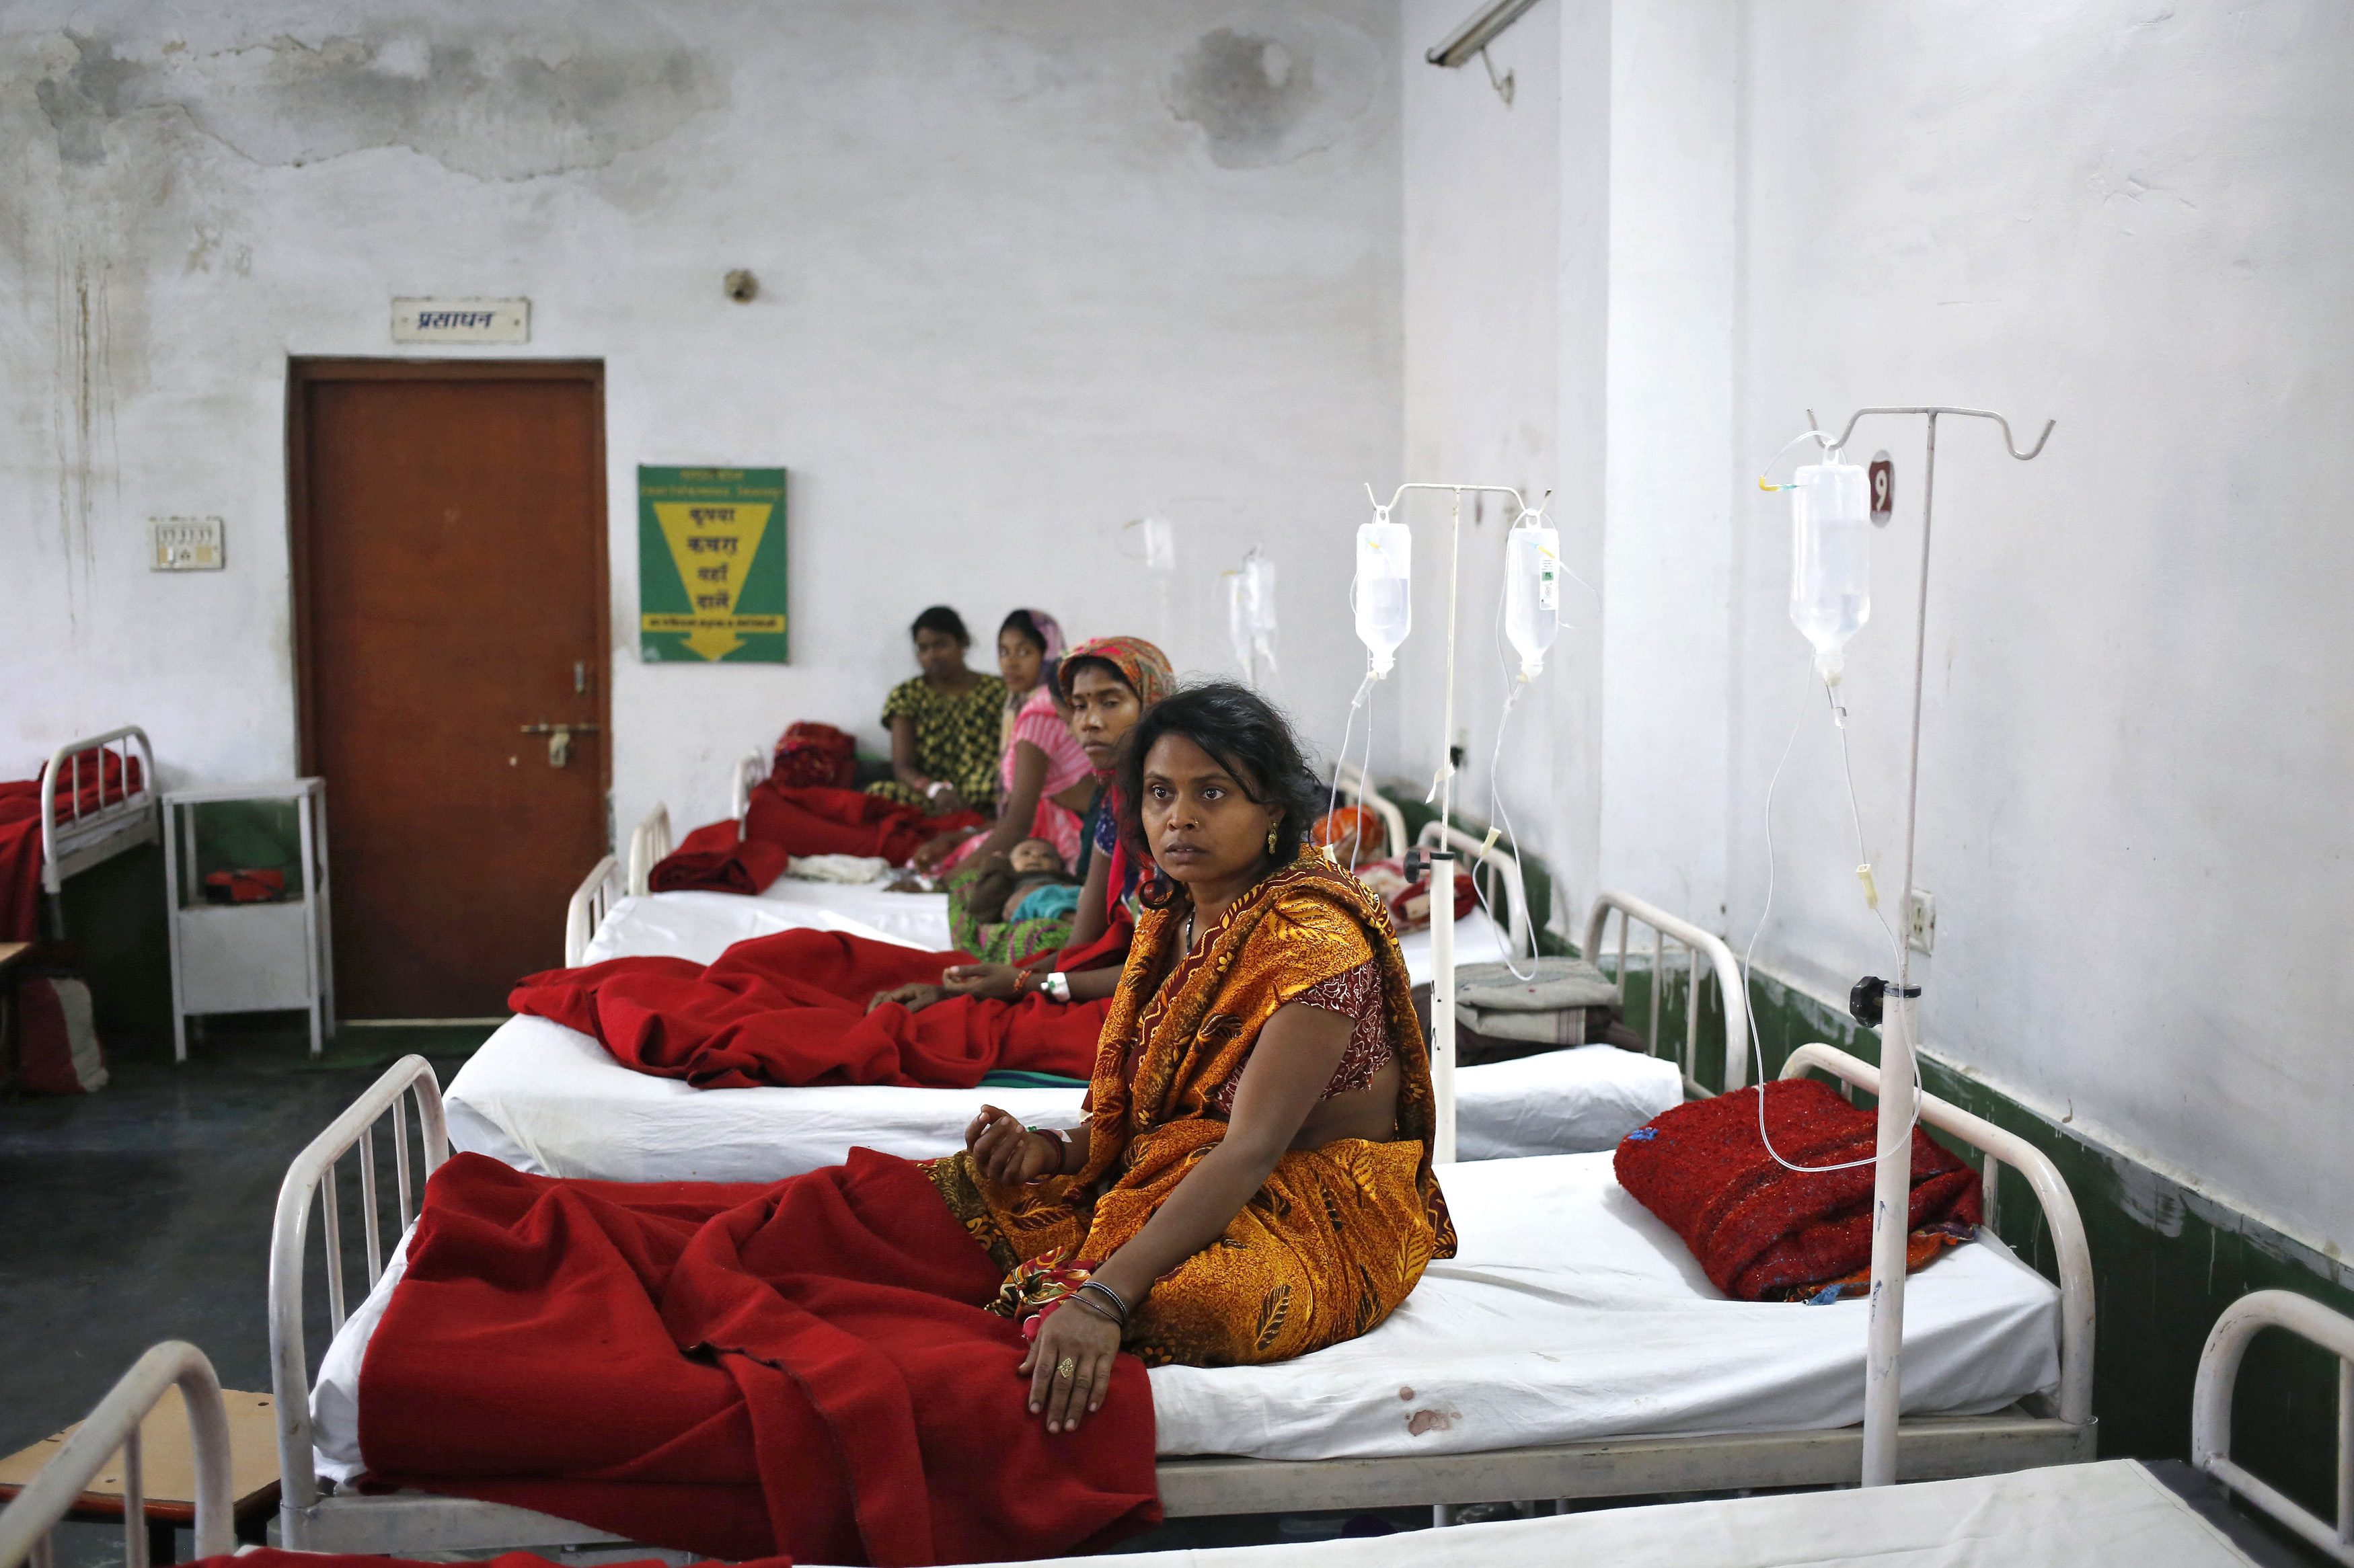 Women, who underwent a sterilization surgery at a government mass-sterilization  camp,  lie in hospital beds for treatment at the Chhattisgarh Institute of Medical Sciences hospital in Bilaspur, in the eastern Indian state of Chhattisgarh, on Nov. 13, 2014